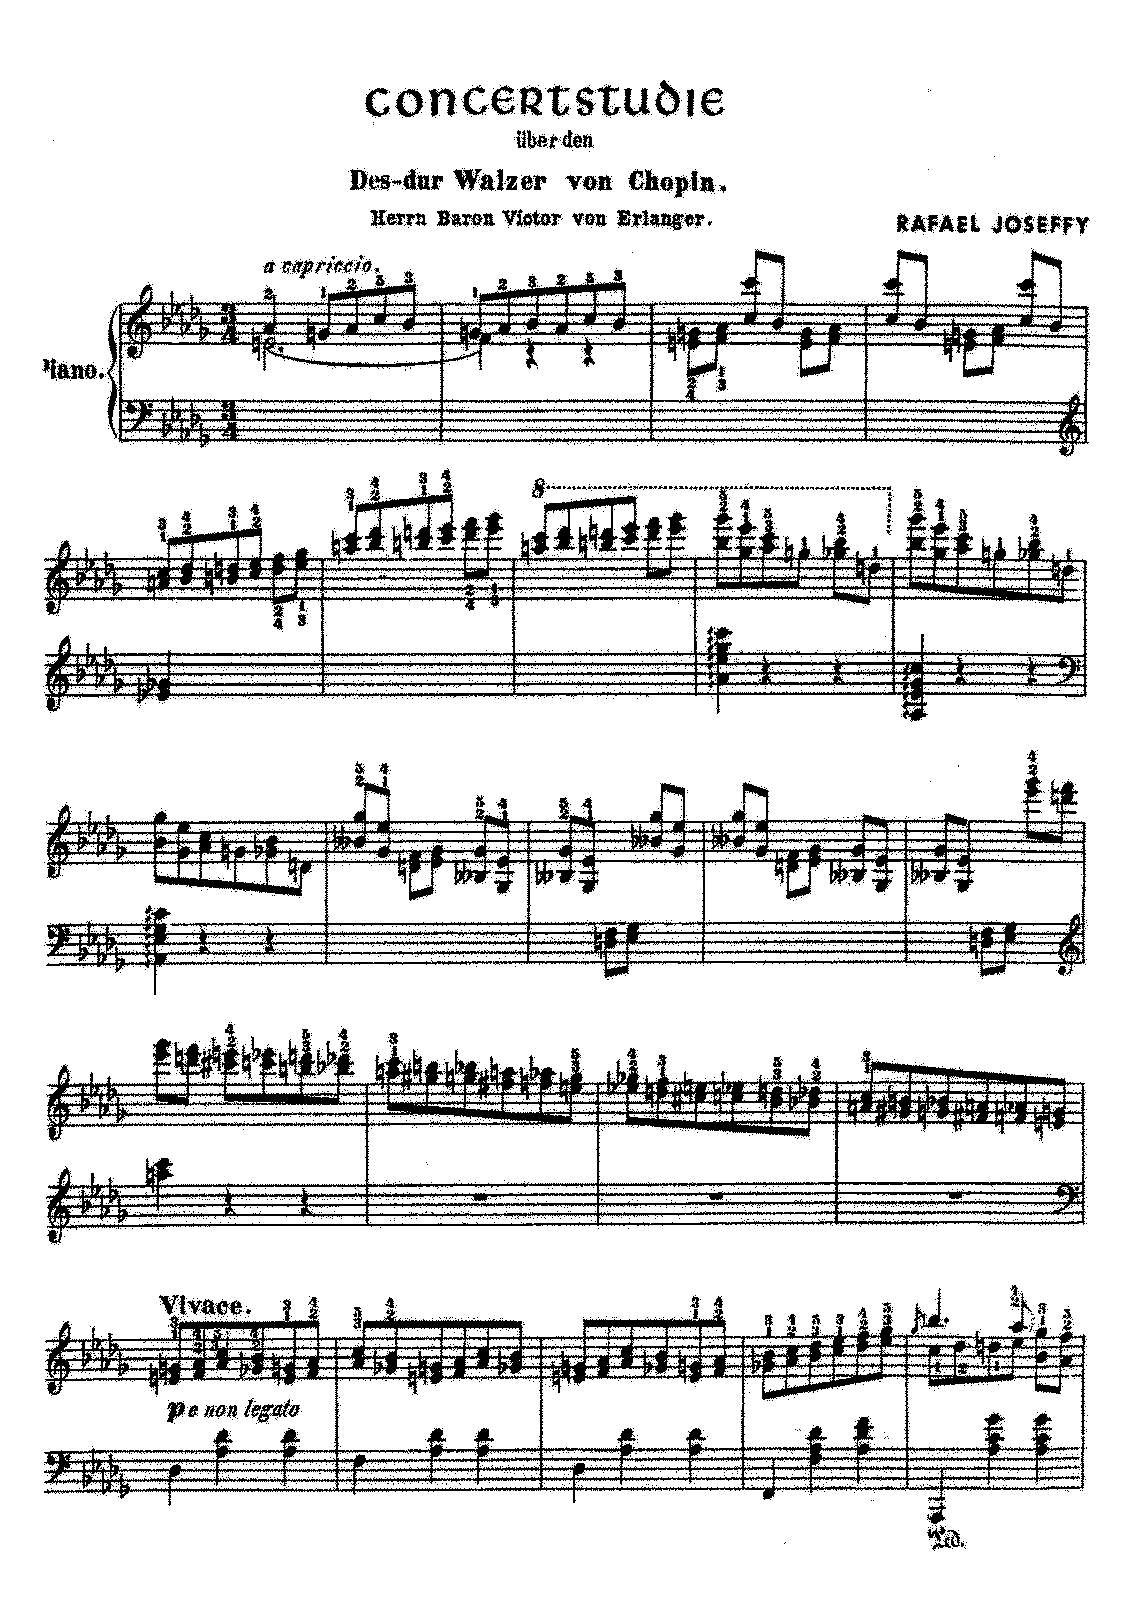 PMLP53641-Joseffy - Concert Study no 1 - after Chopin's Des-dur Walzer.pdf